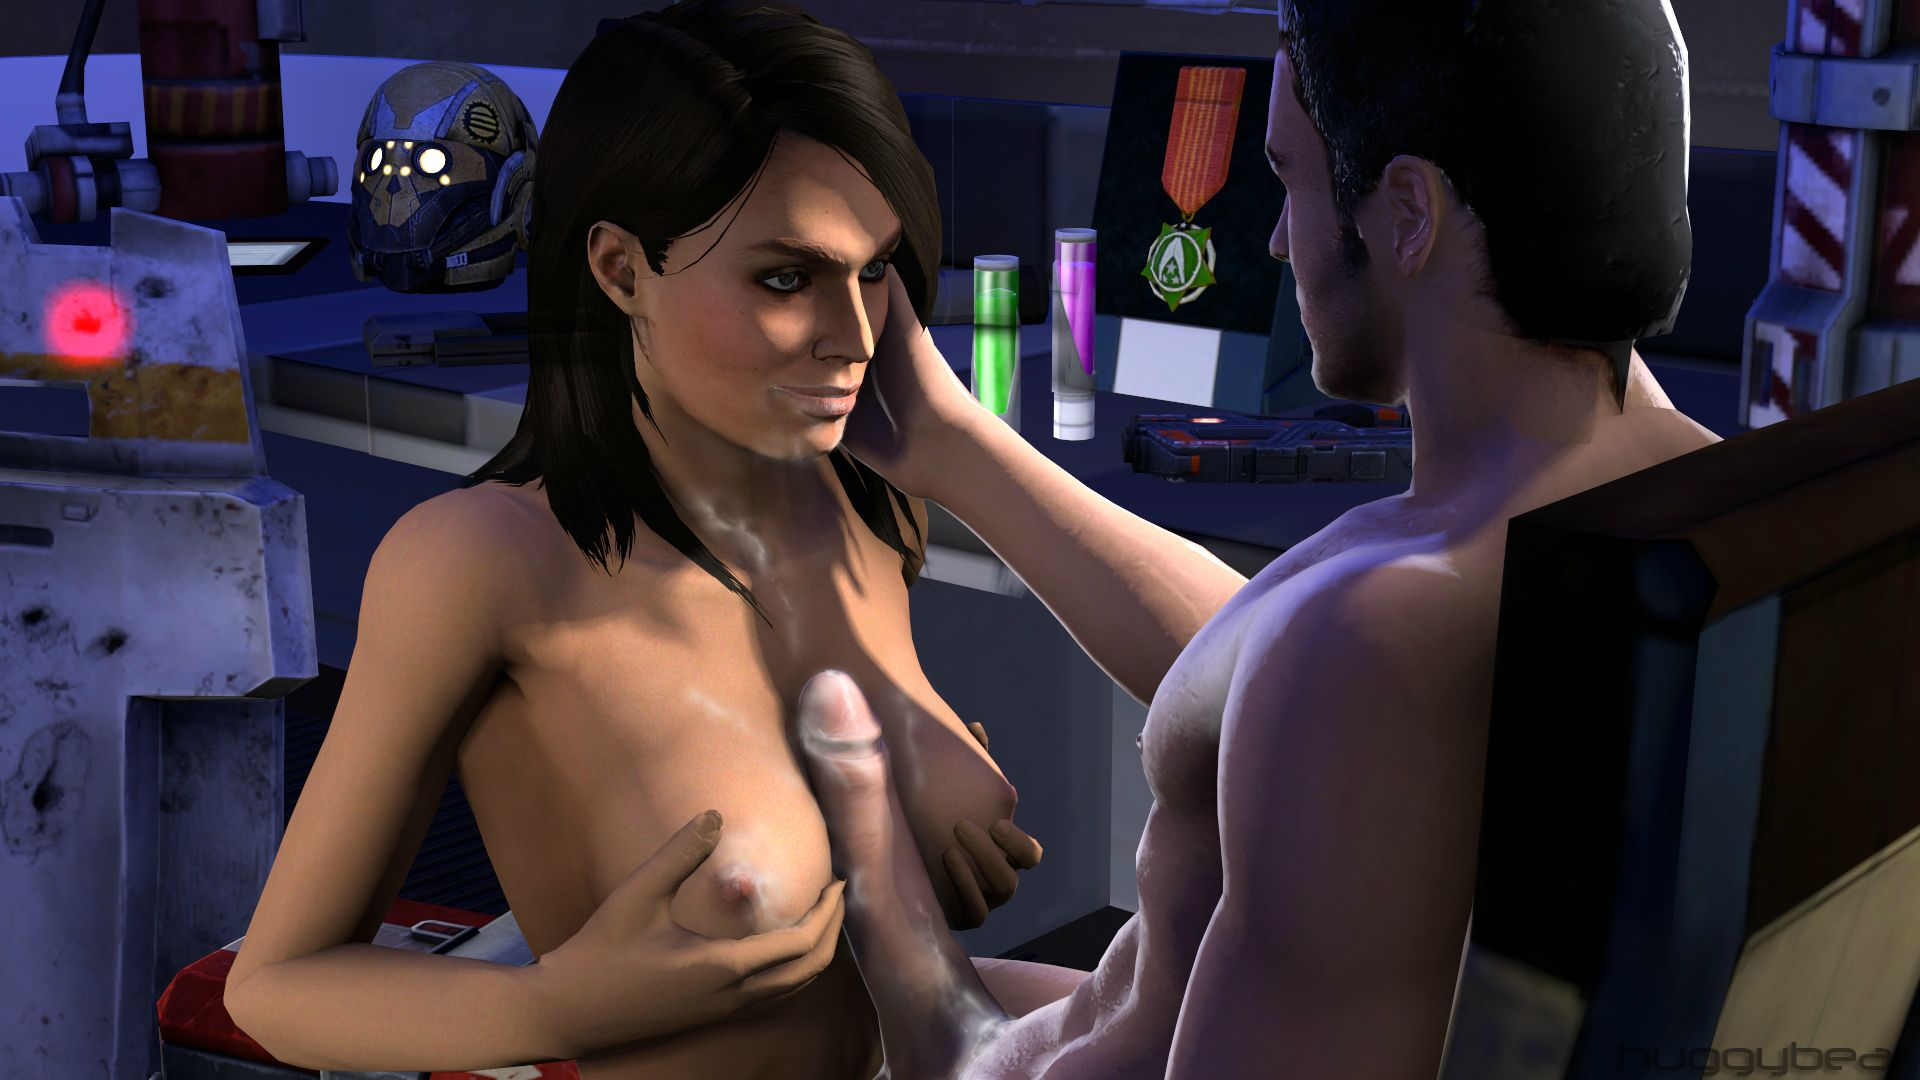 Nude sex Mass effect